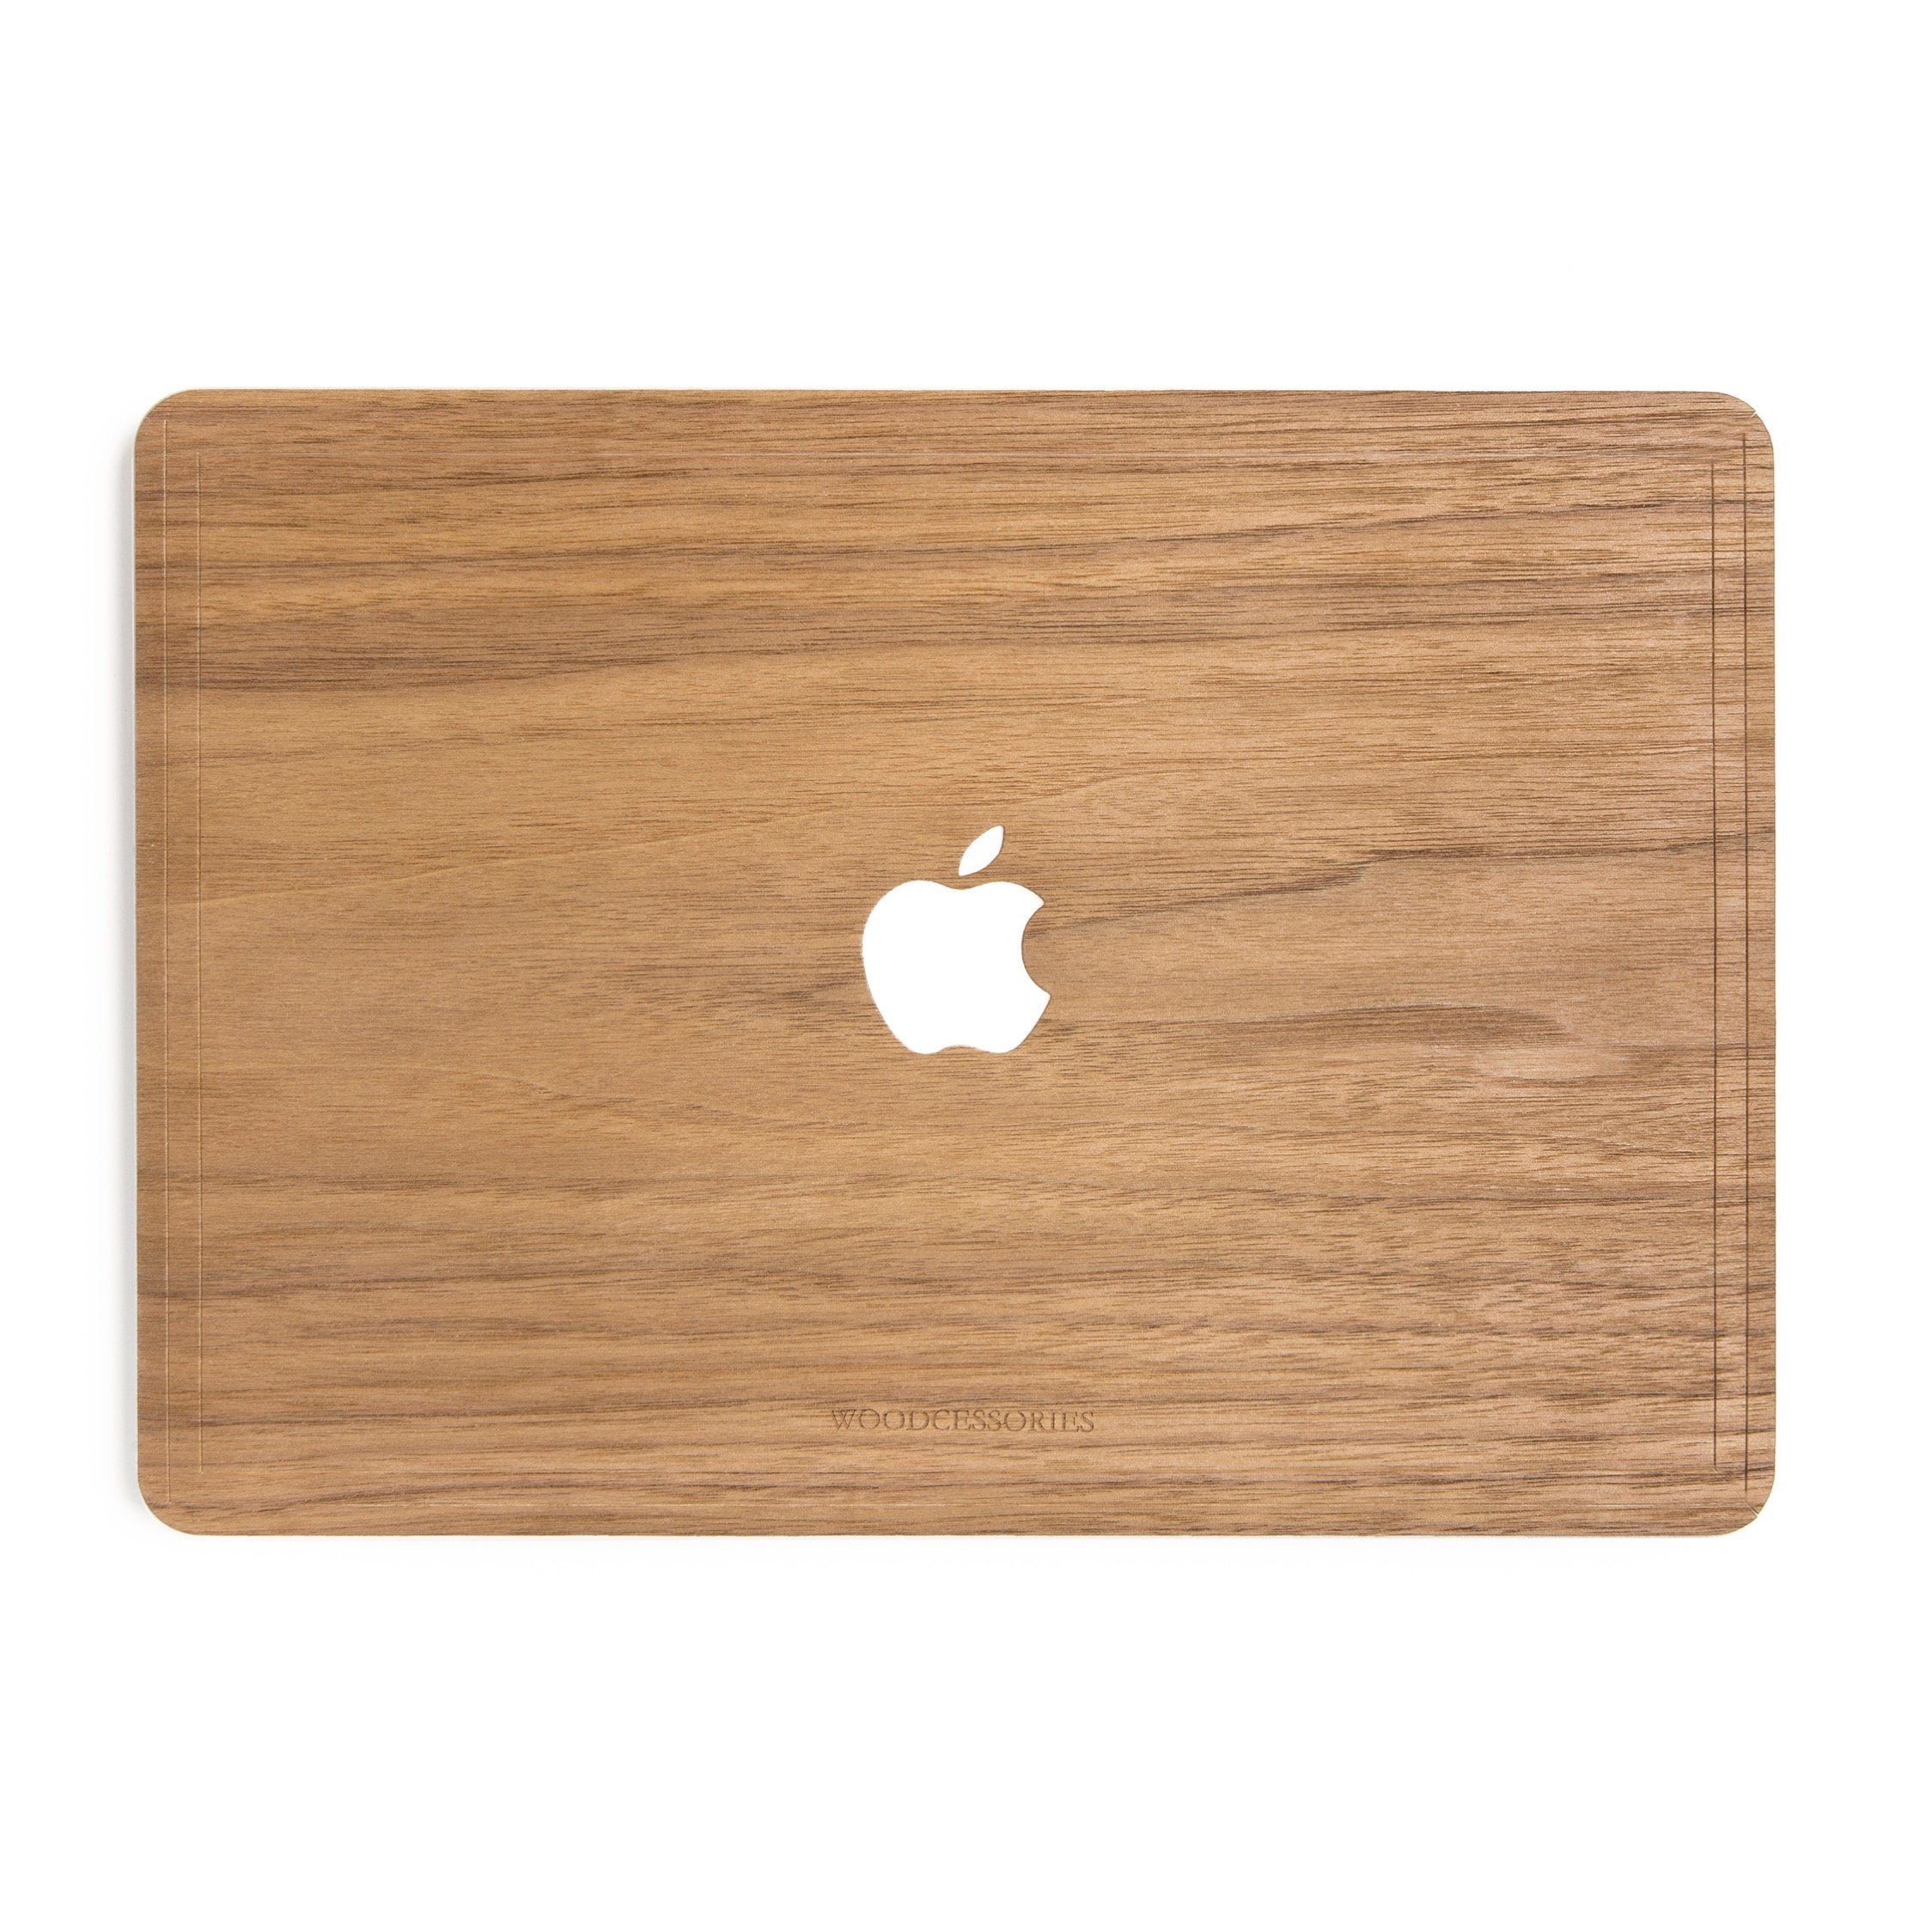 Woodcessories EcoSkin - Echtholz Cover MacBook Air 11,6 Zoll - Walnuss